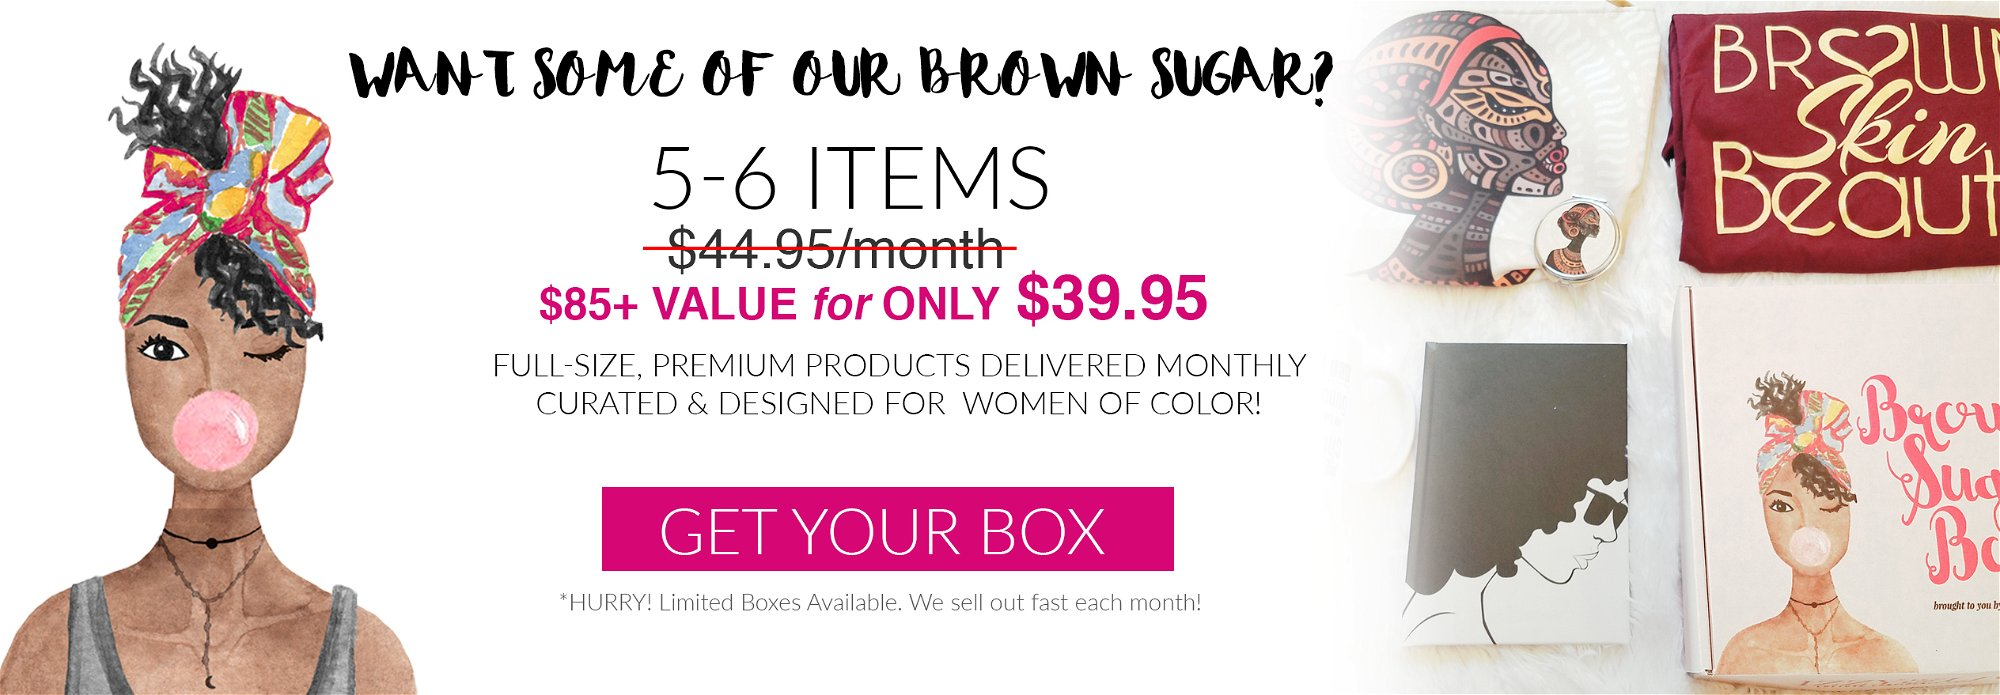 Want Some Of Our Brown Sugar? Get The Box!